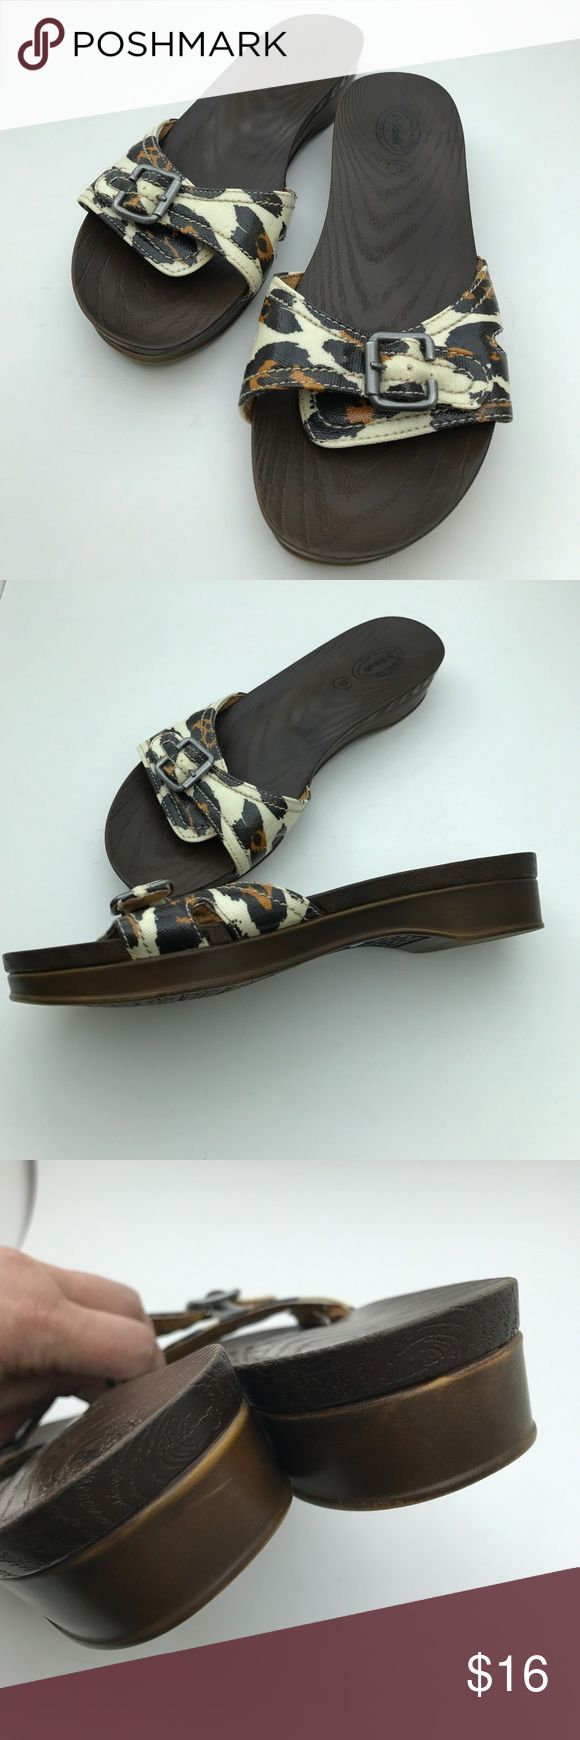 """Dr. Scholl's Leopard Print Sandals Oh yeah....the more """"leopardy"""" the better! Fun sandals, all man made, size 8, have been worn - still in good shape. I offer 15% off bundles - make your shipping cost worth your while!  T1 Dr. Scholl's Shoes Sandals"""